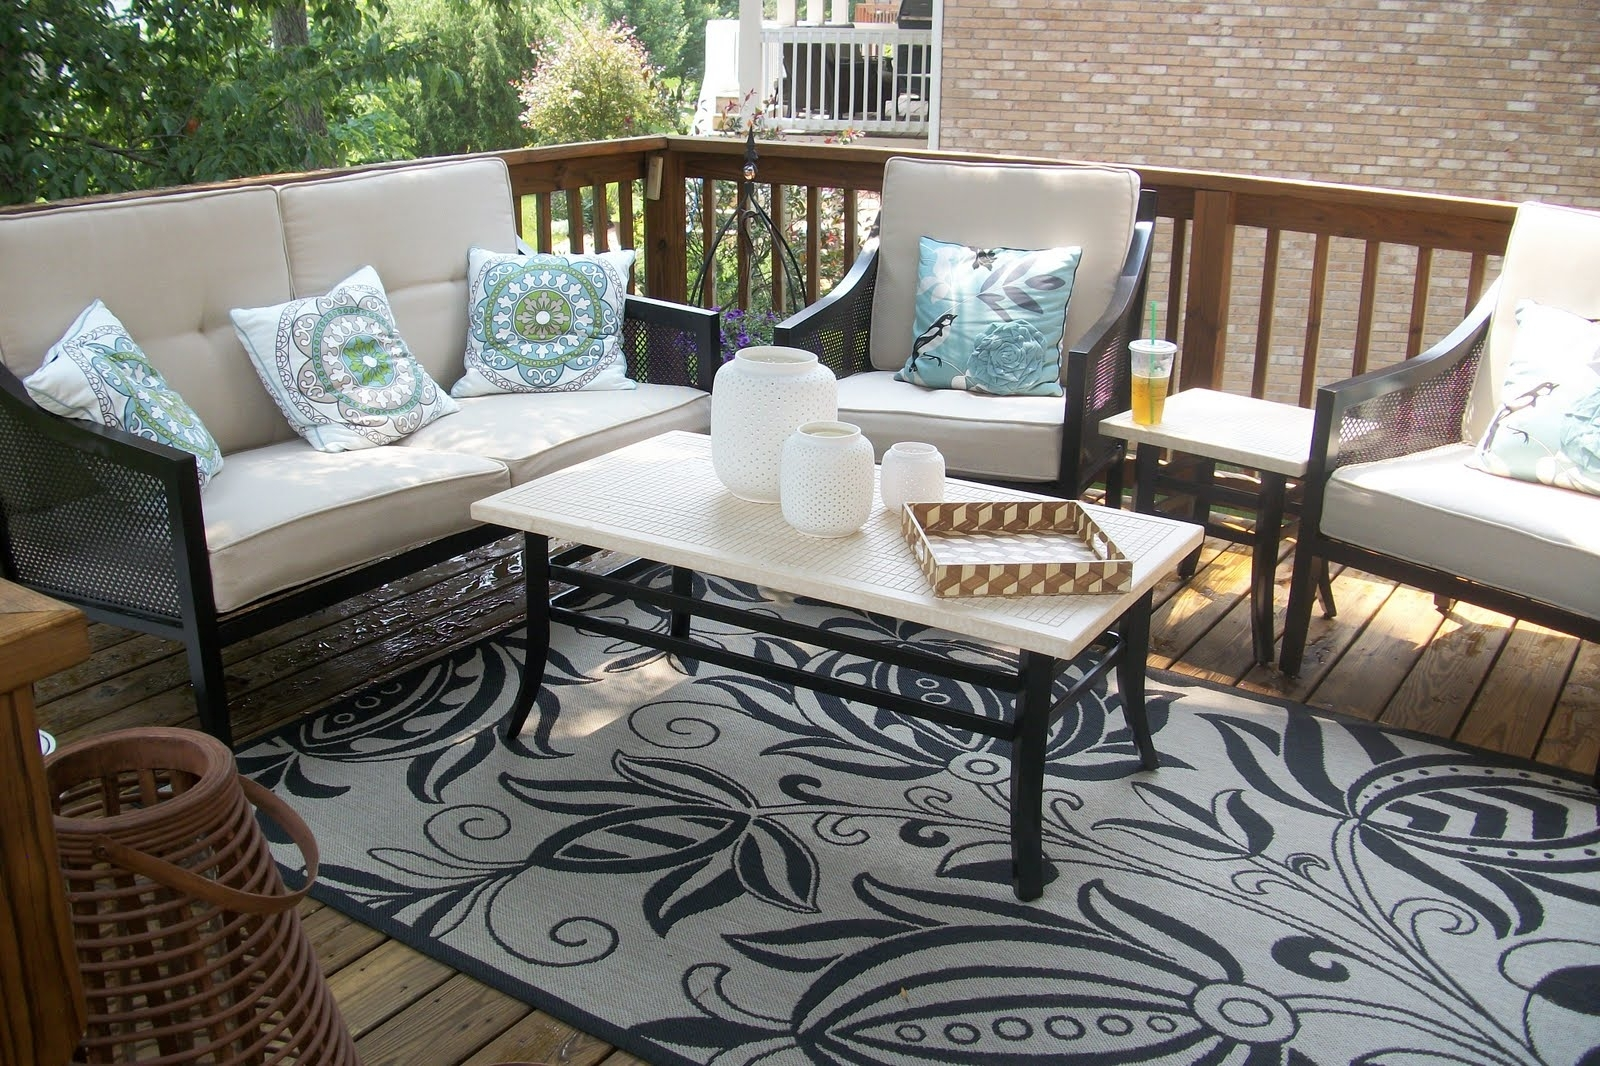 Target Patio Furniture Conversation Sets Within Fashionable Patio : Outdoor Patio Furniture Walmart Target Engaging Image (View 13 of 15)